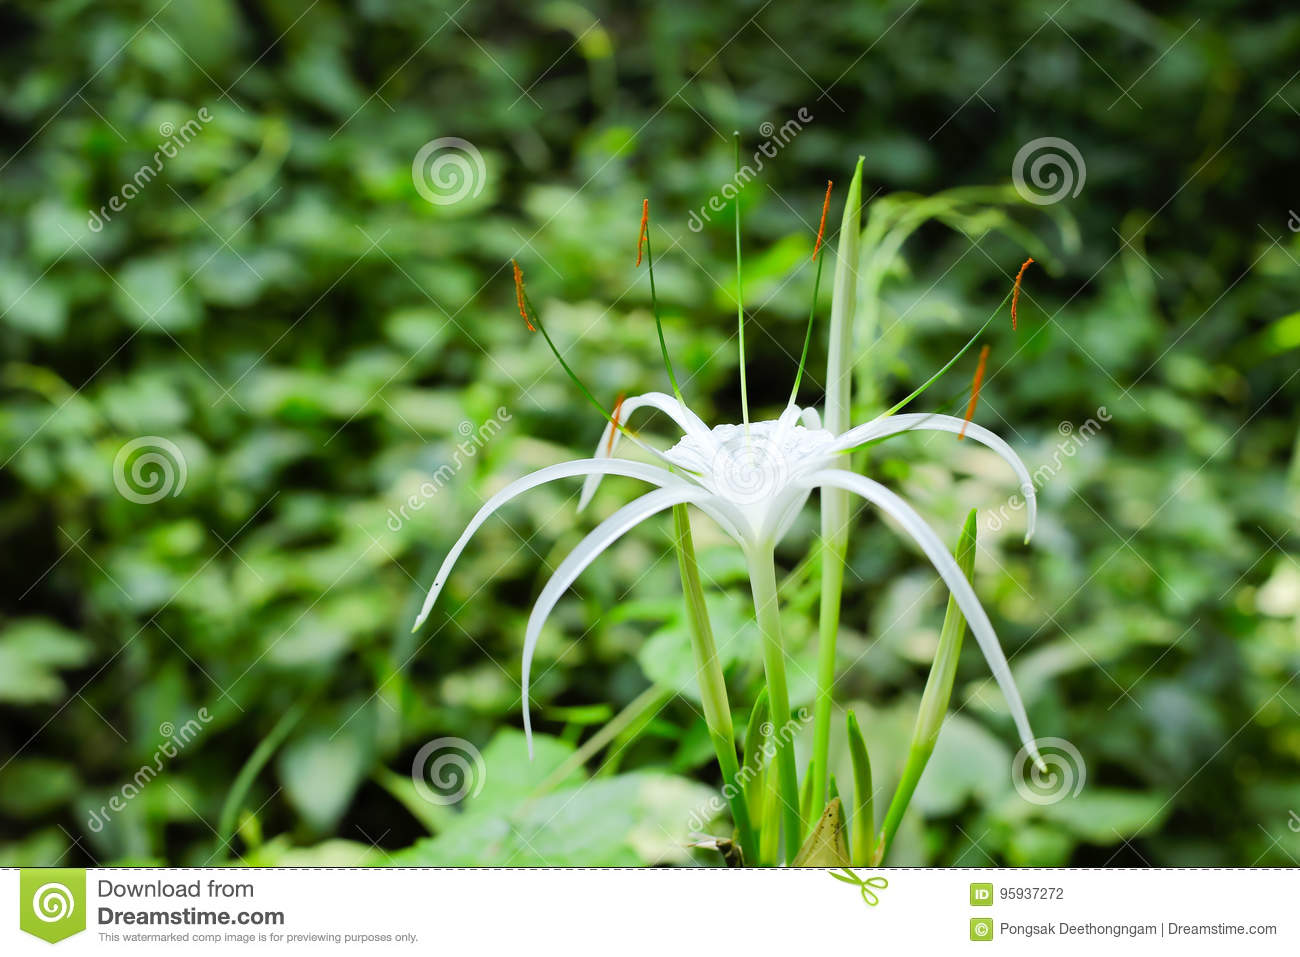 Spider lily flower stock photo image of hawaiian petal 95937272 download spider lily flower stock photo image of hawaiian petal 95937272 izmirmasajfo